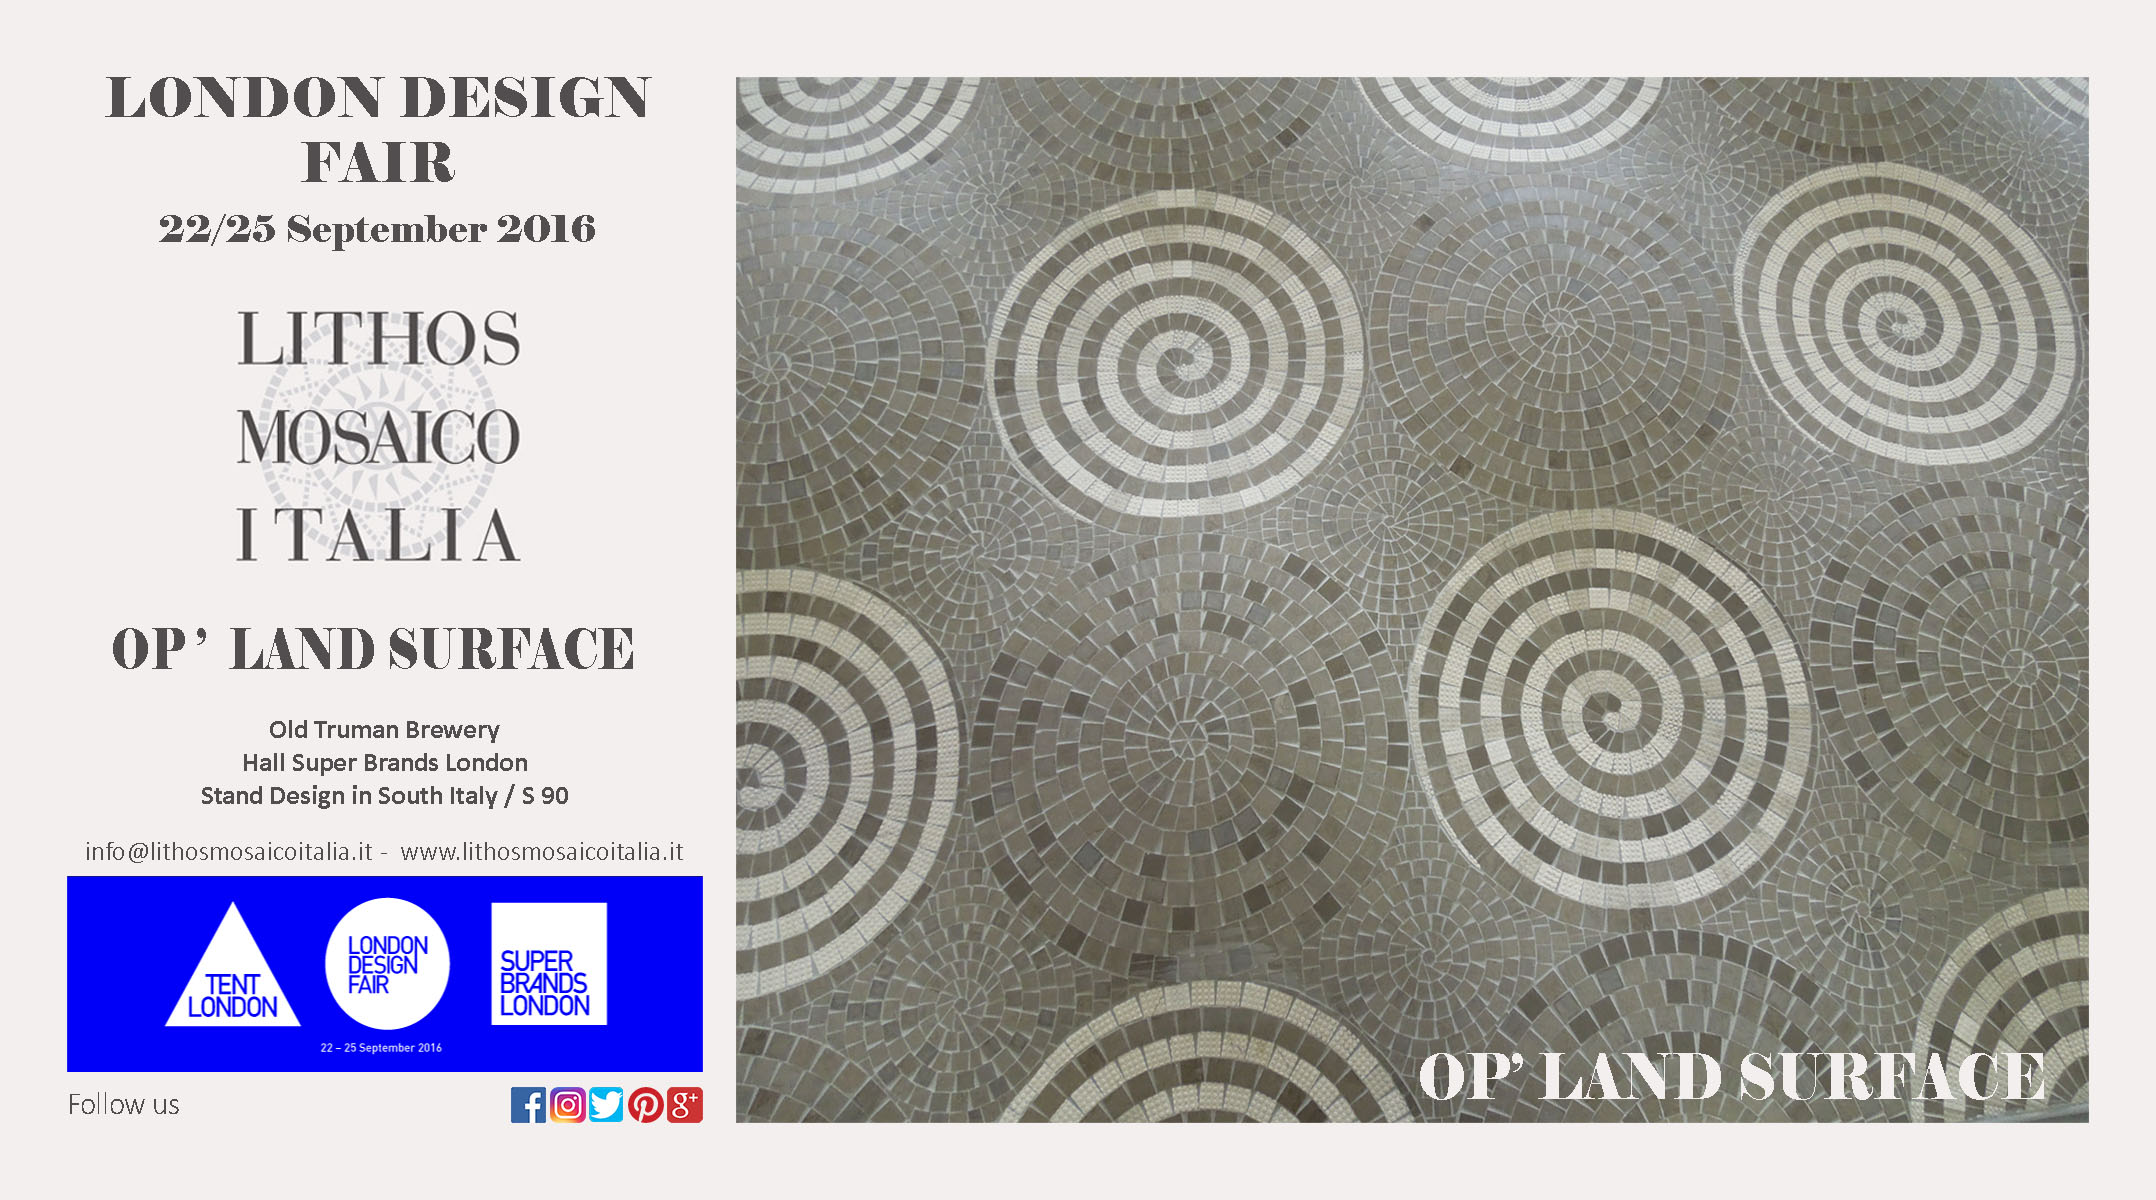 London-Design-Fair-2016-LithosMosaicoItalia-OPLandWall London Design Fair 2016 Fiere